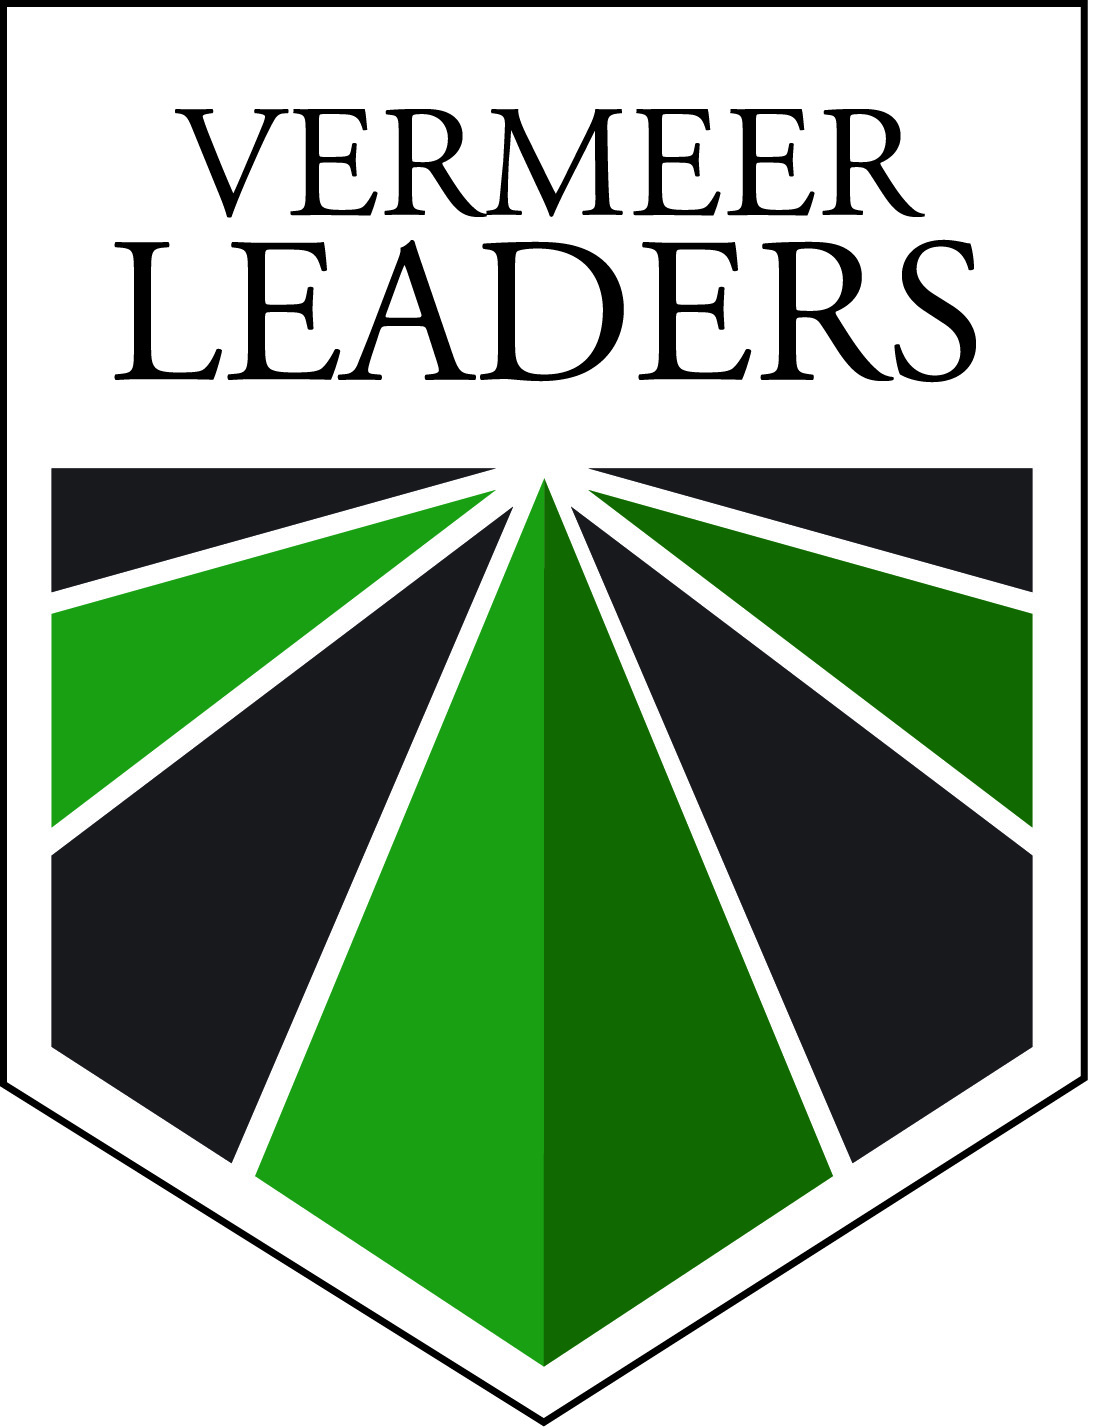 VermeerLeaders